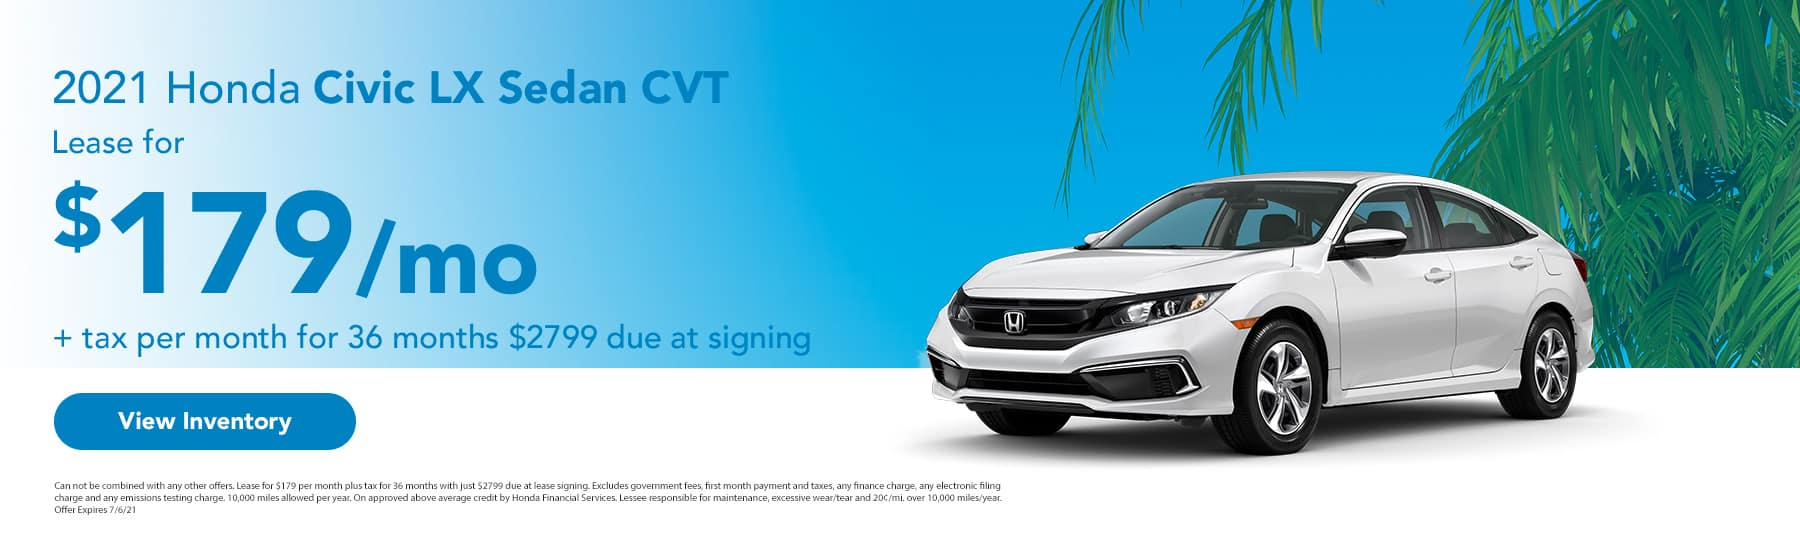 2021 Honda Civic Sedan LX CVT, Lease for $179 + tax per month for 36 months $2799 due at signing